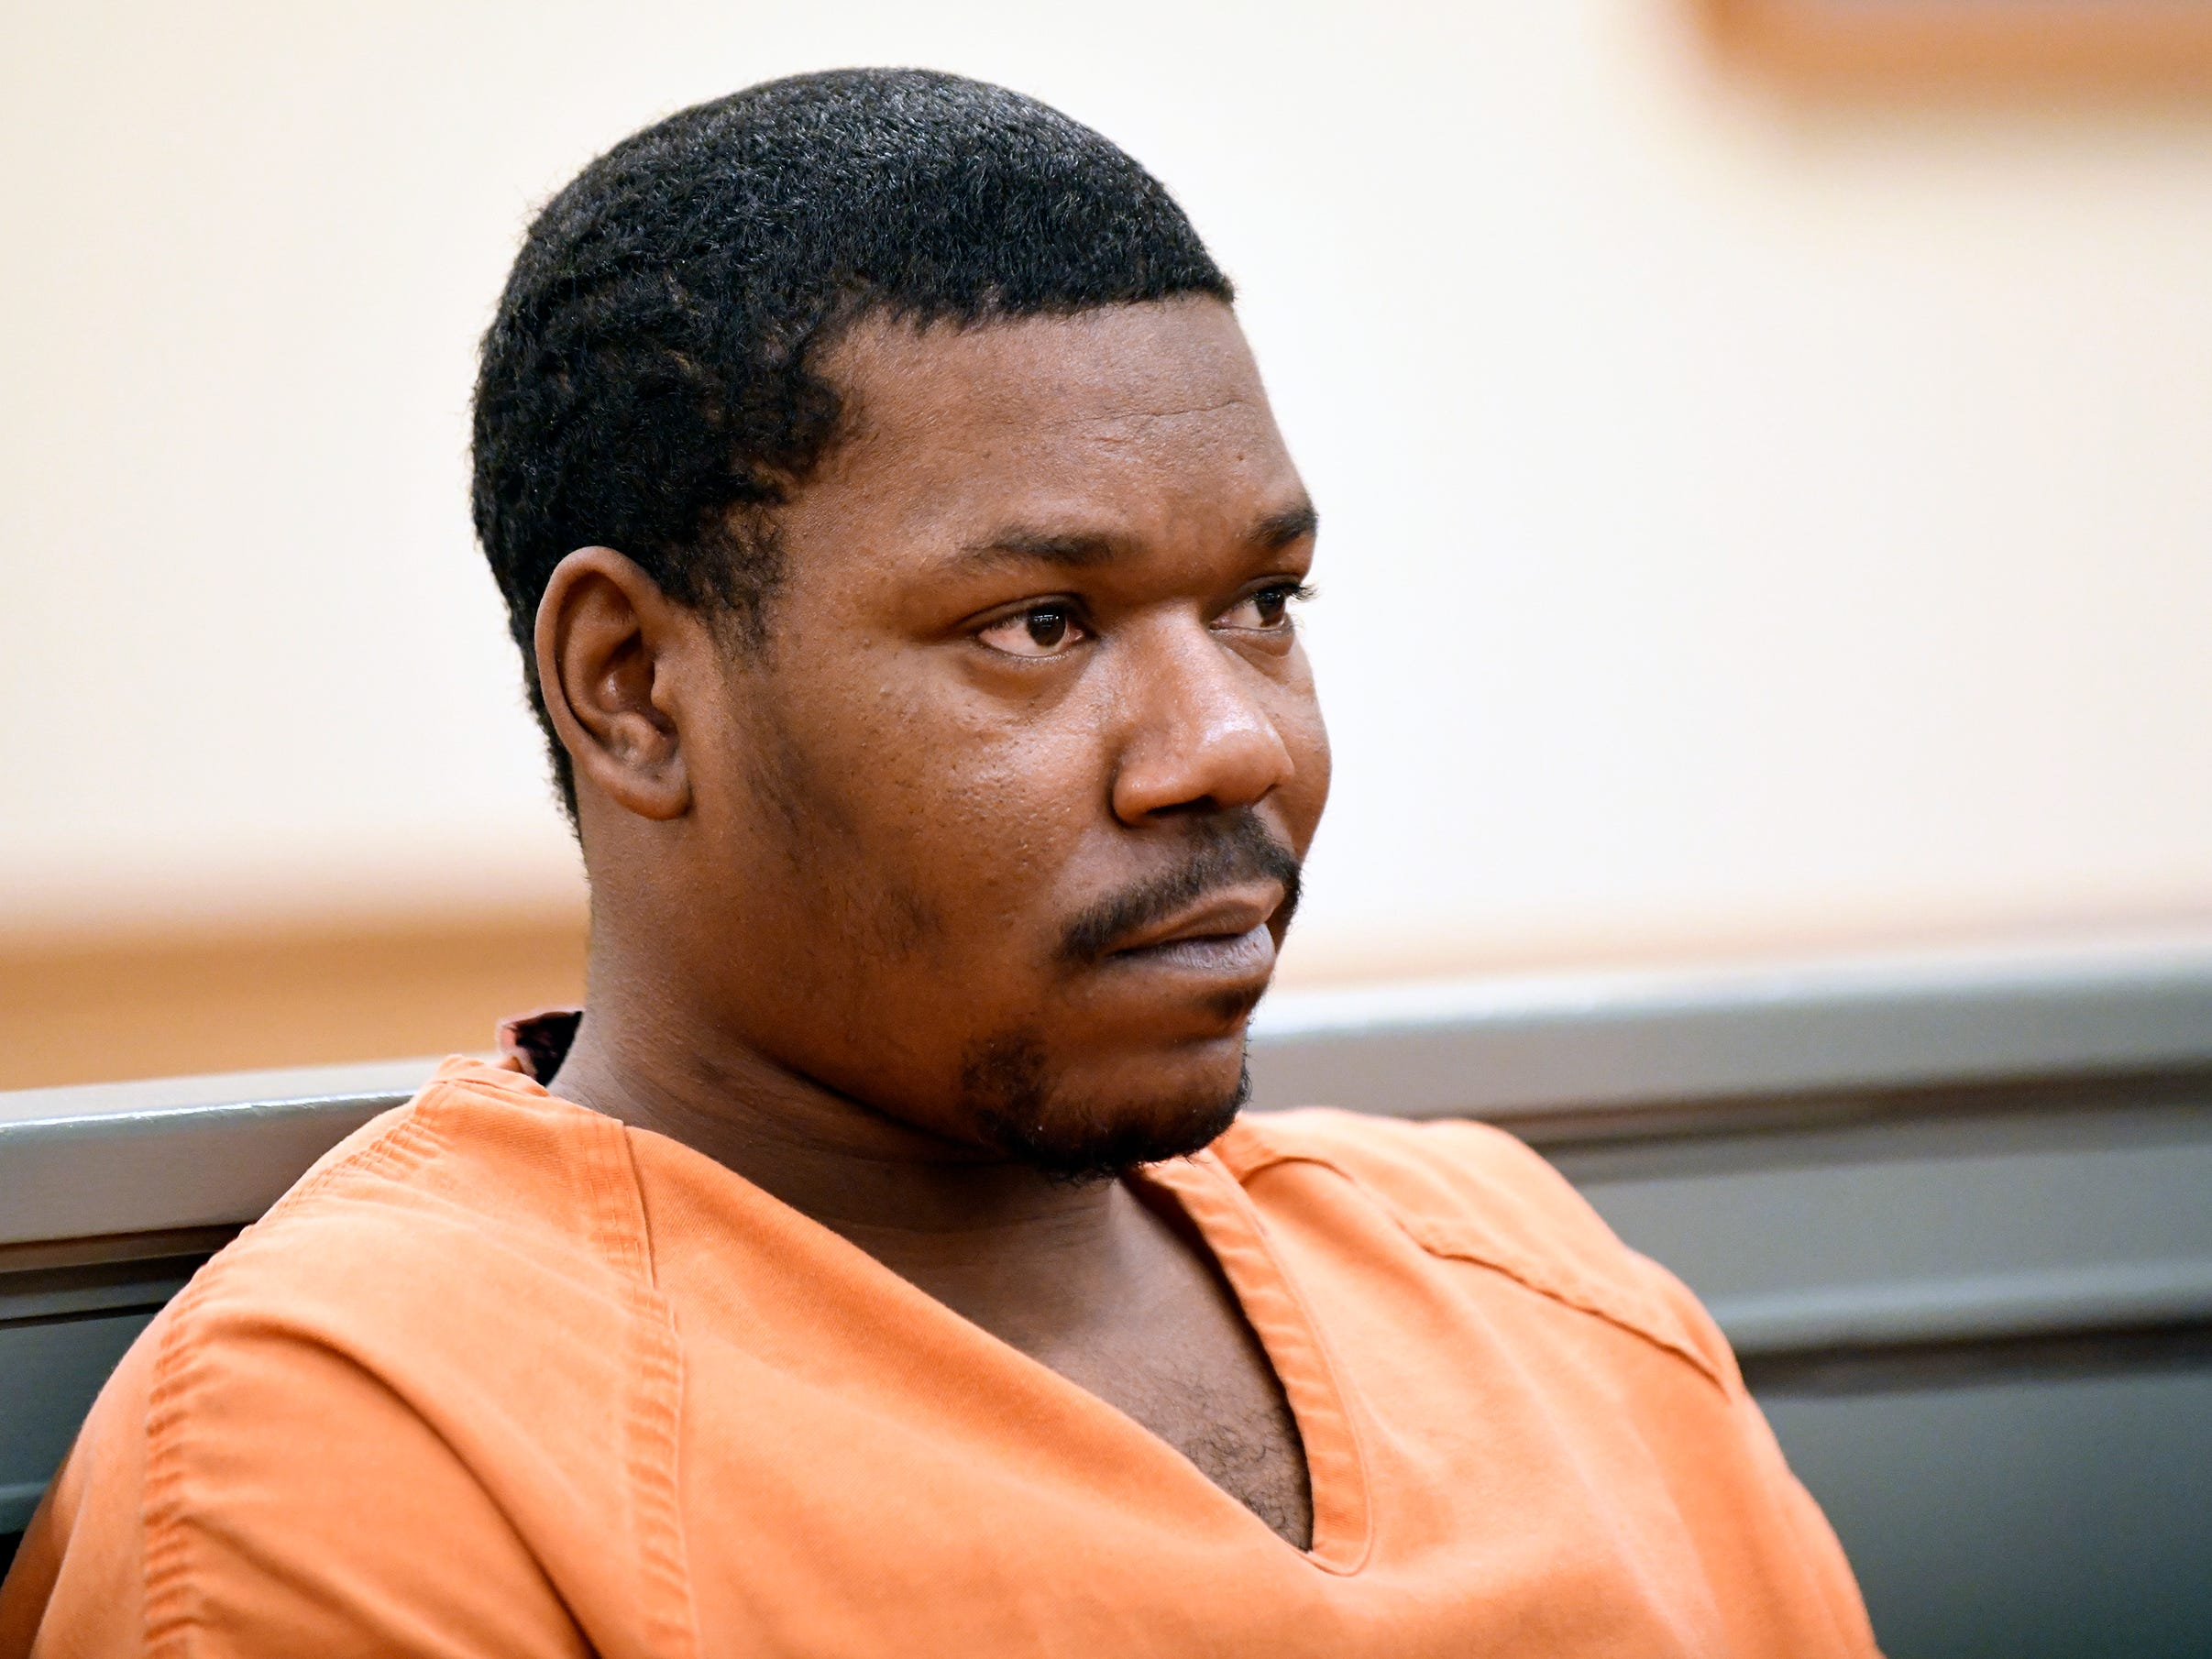 Clifton D. Bailey appears in Cumberland County Superior Court before Judge Michael Silvanio on Monday, March 4, 2019. Bailey is charged with homicide in the killing of Joseph Jones behind Lakeside Middle School in Millville.